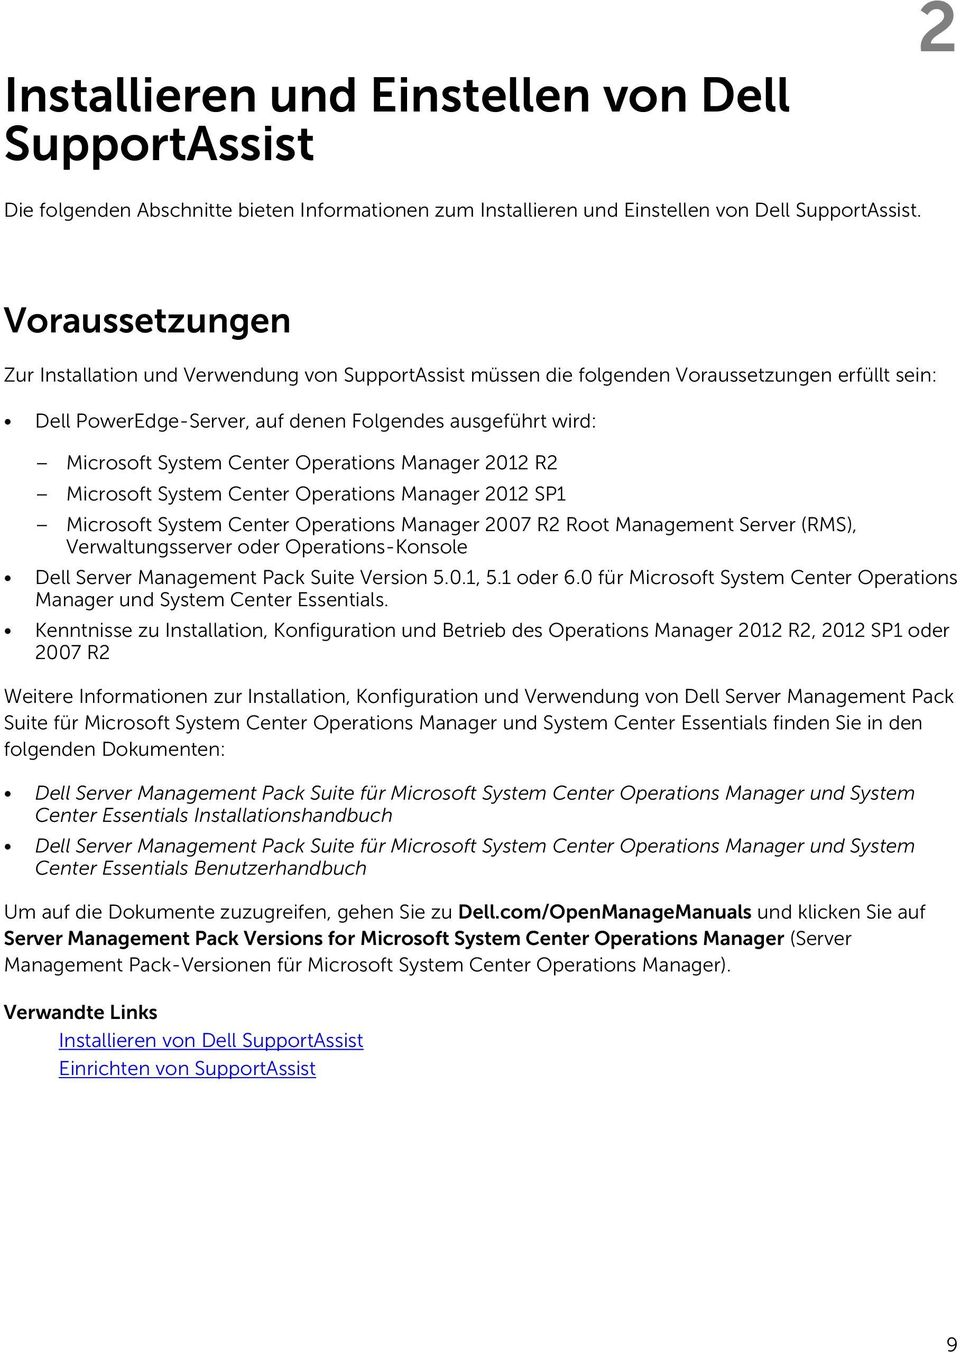 Center Operations Manager 2012 R2 Microsoft System Center Operations Manager 2012 SP1 Microsoft System Center Operations Manager 2007 R2 Root Management Server (RMS), Verwaltungsserver oder